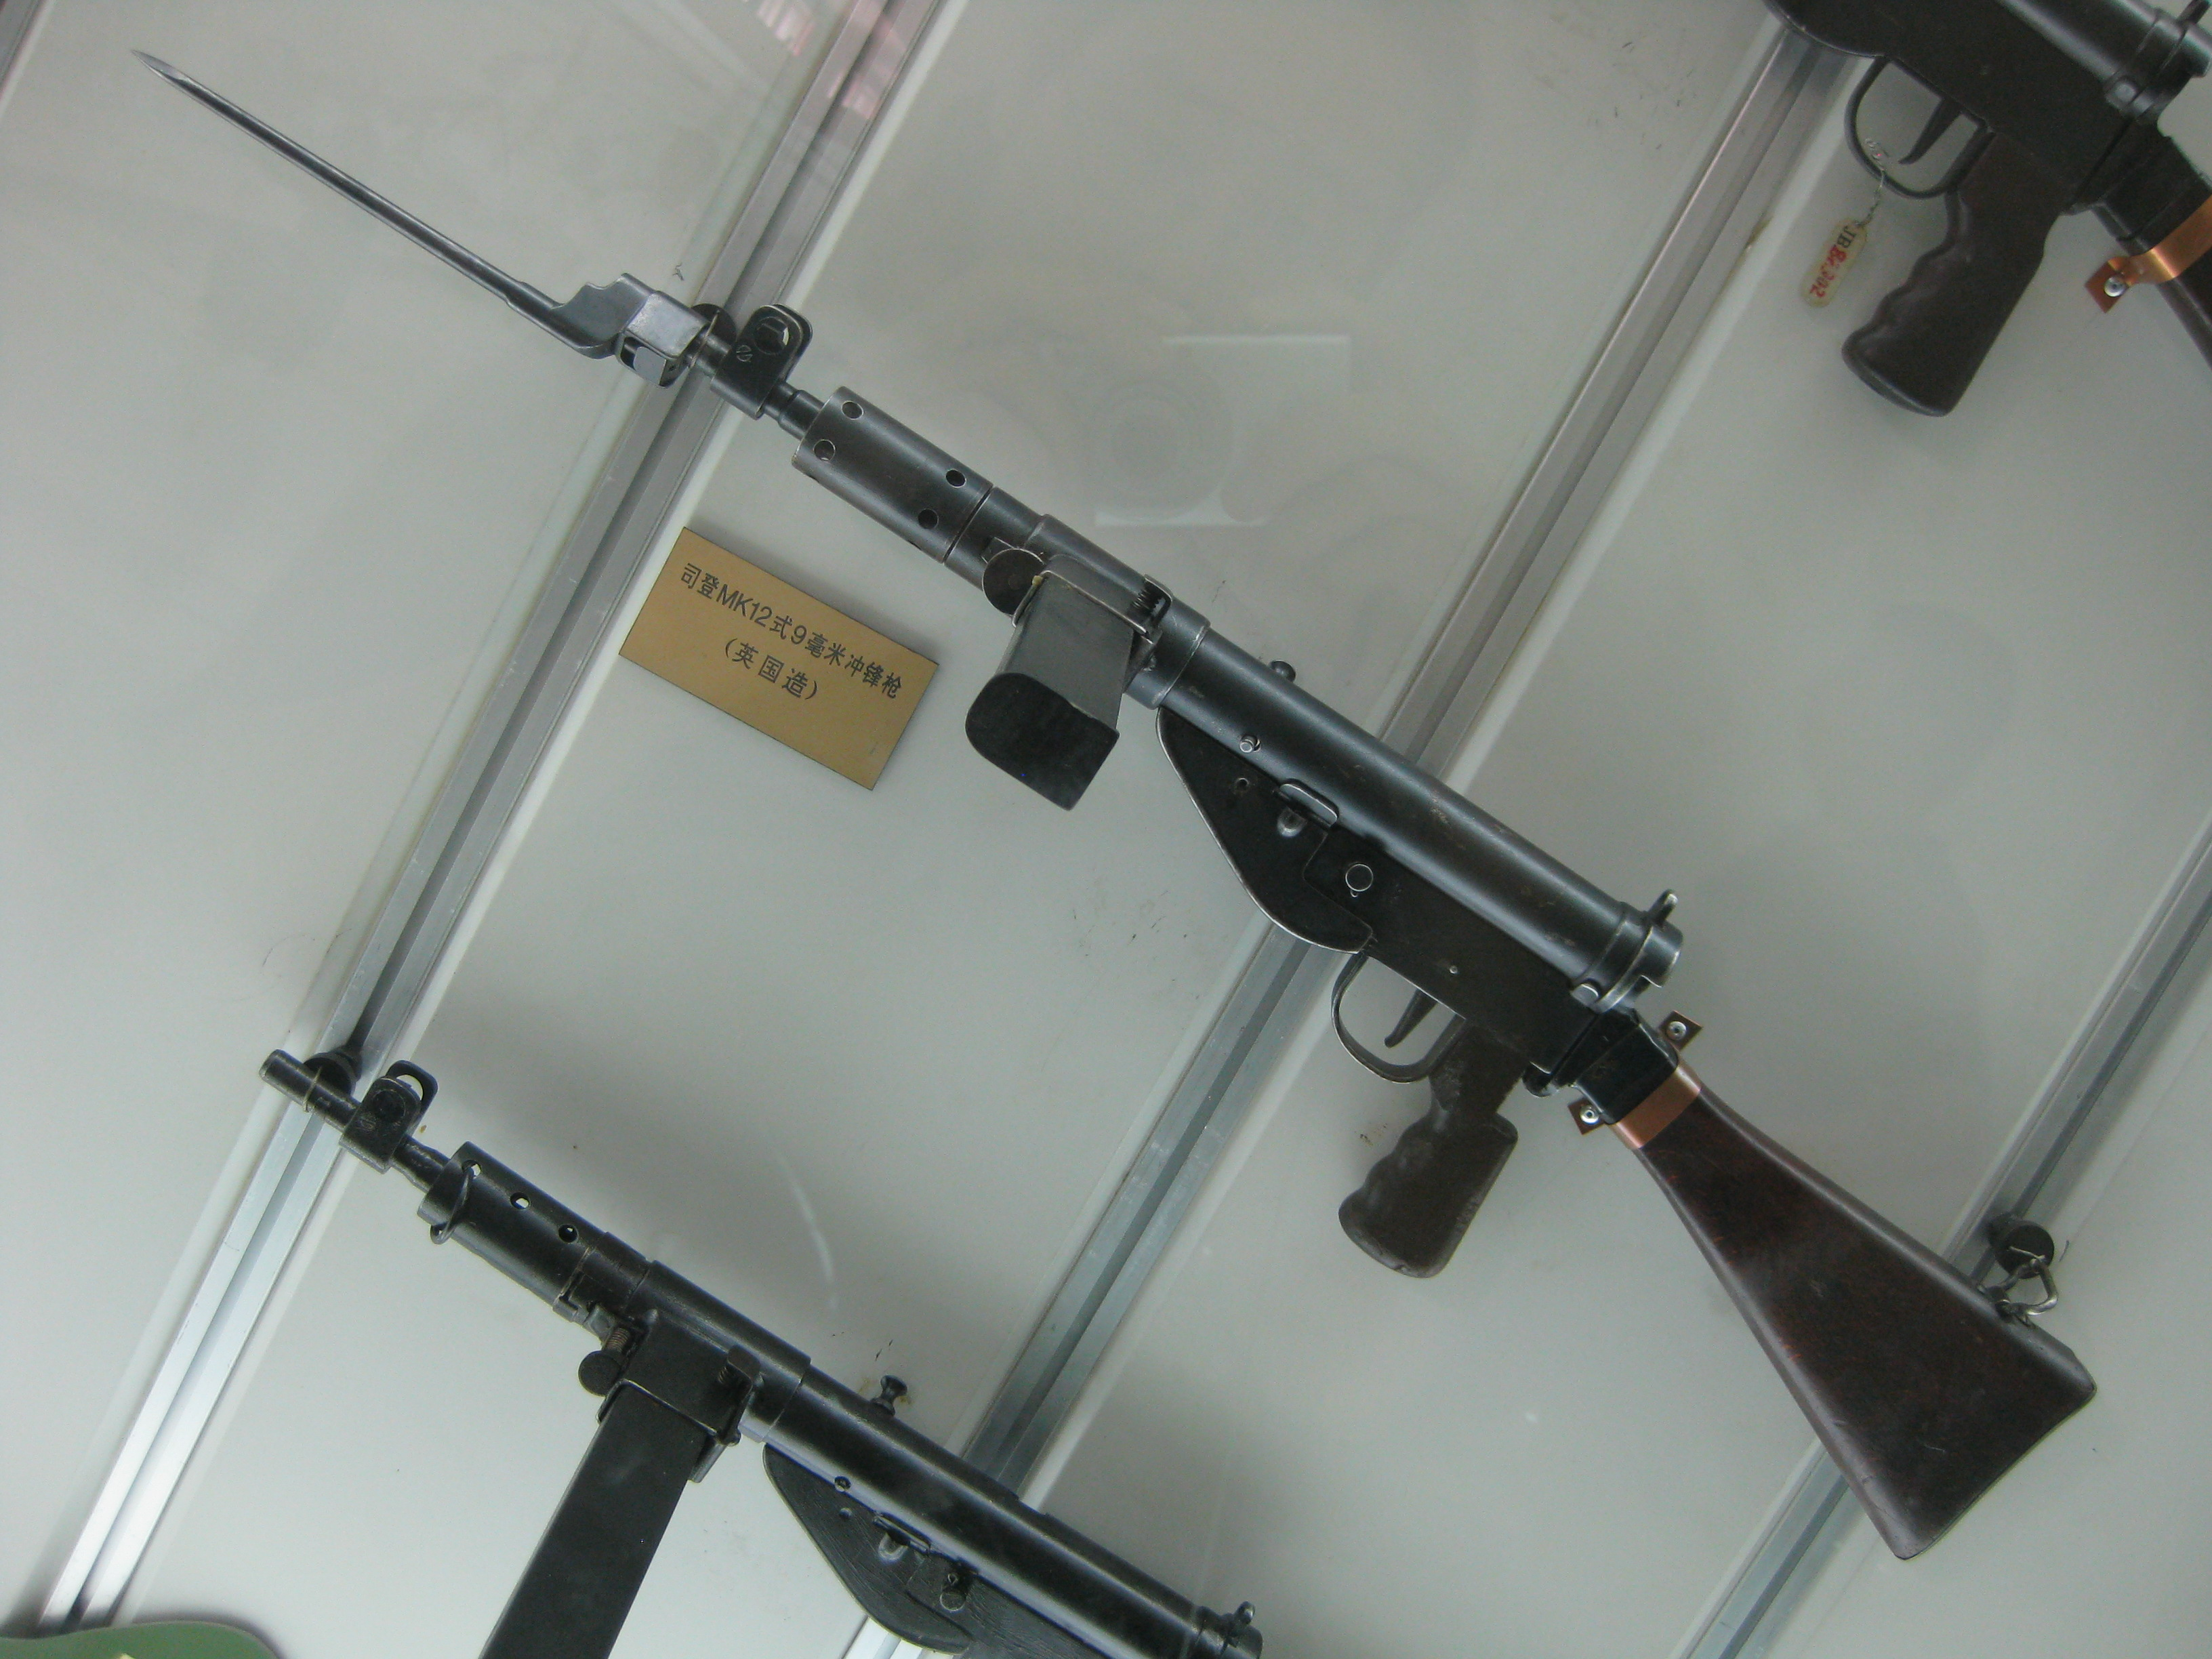 File:STEN gun with bayonete.jpg - Wikimedia Commons